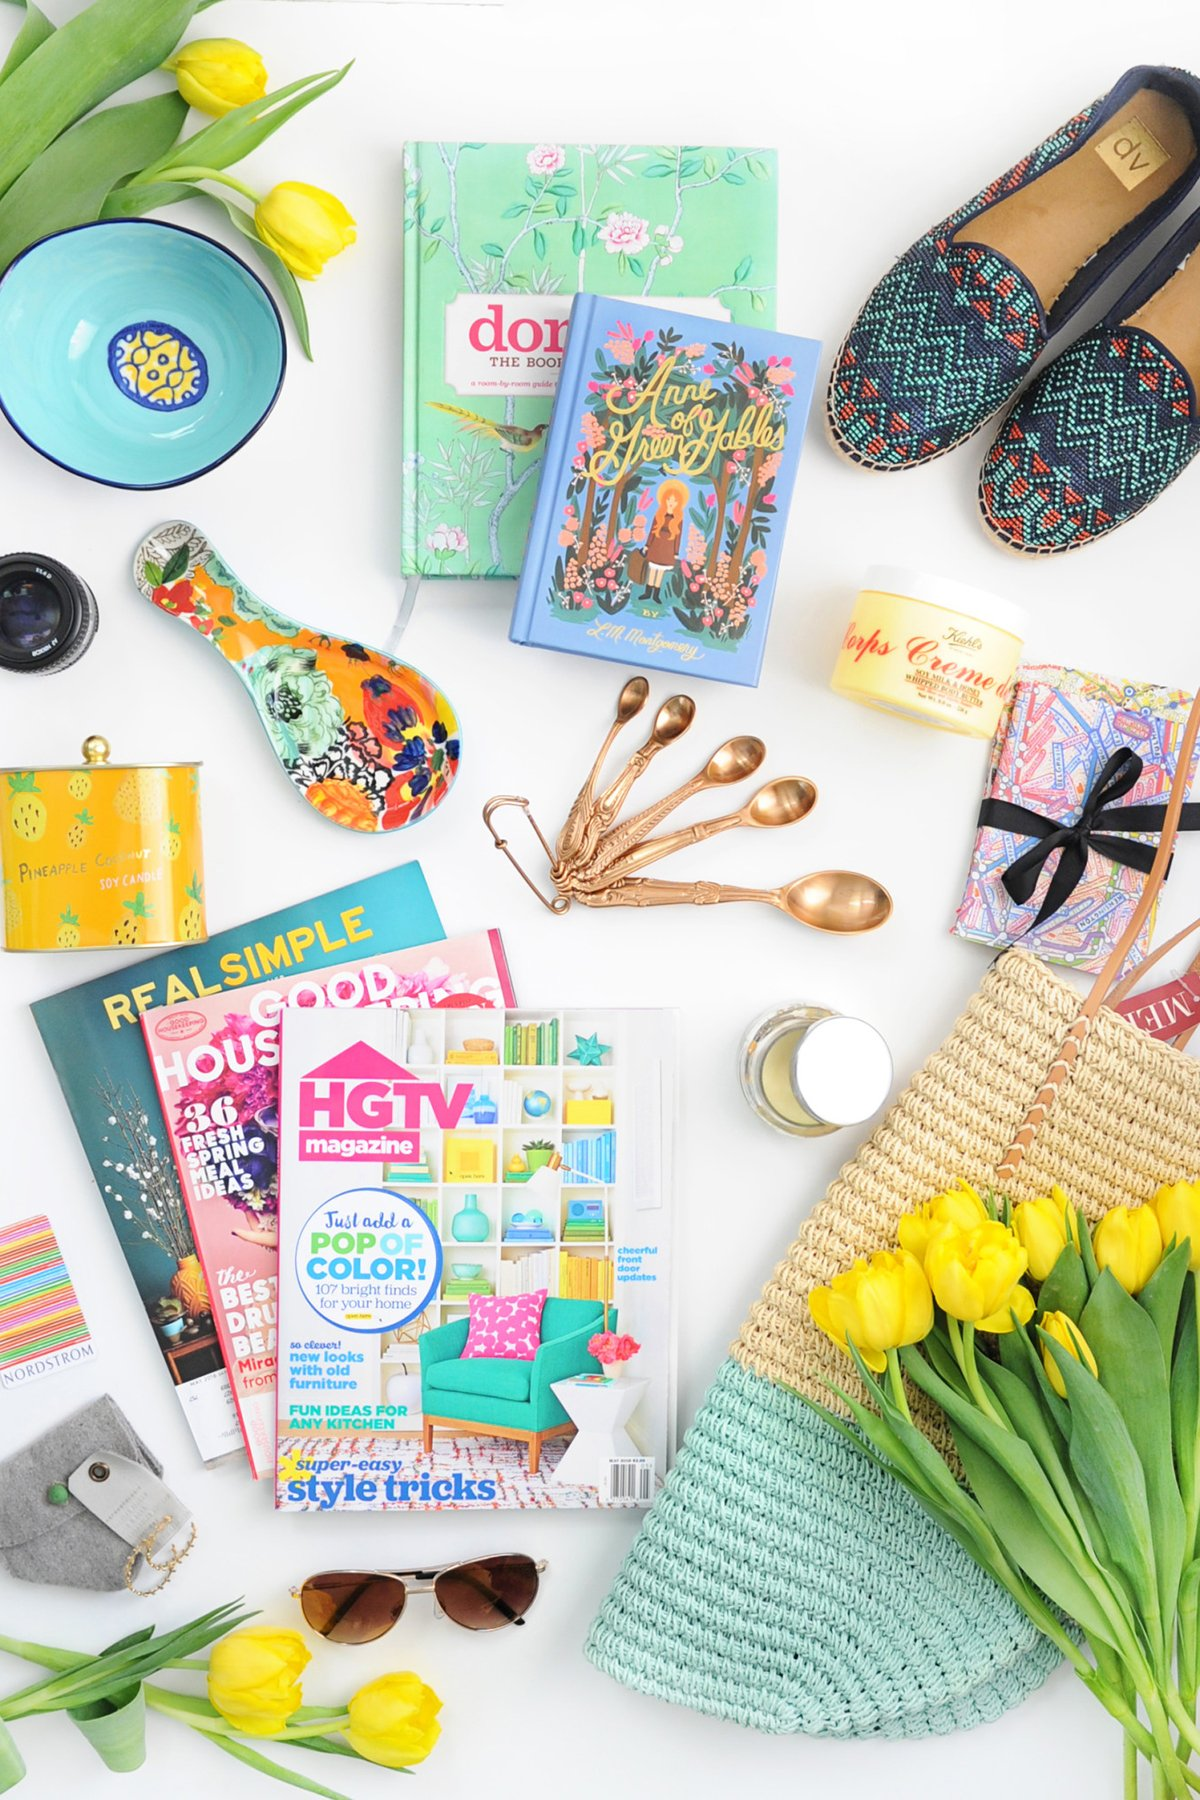 lay flat mothers day shopping image